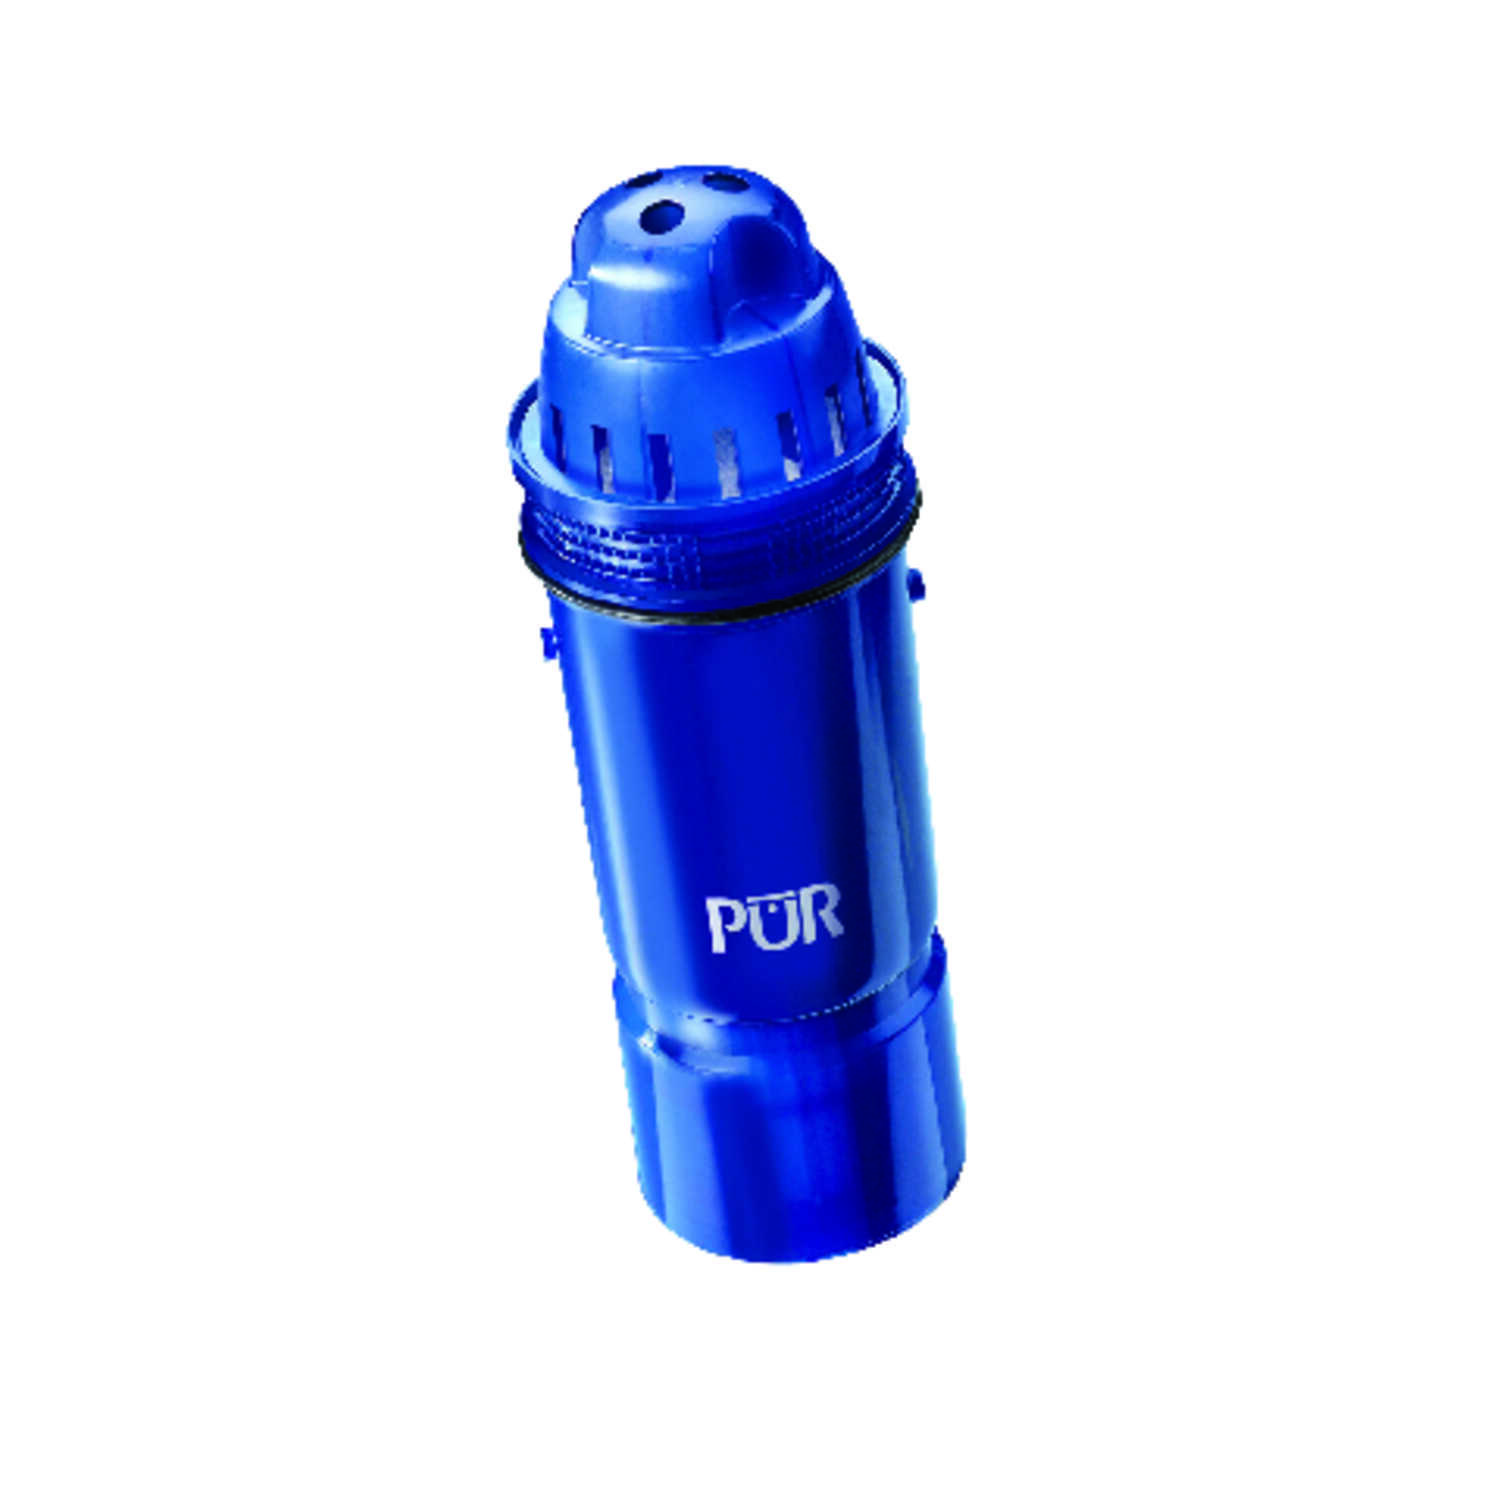 PUR  Maxion  Replacement Water Filter  For Pitchers 40 gal.